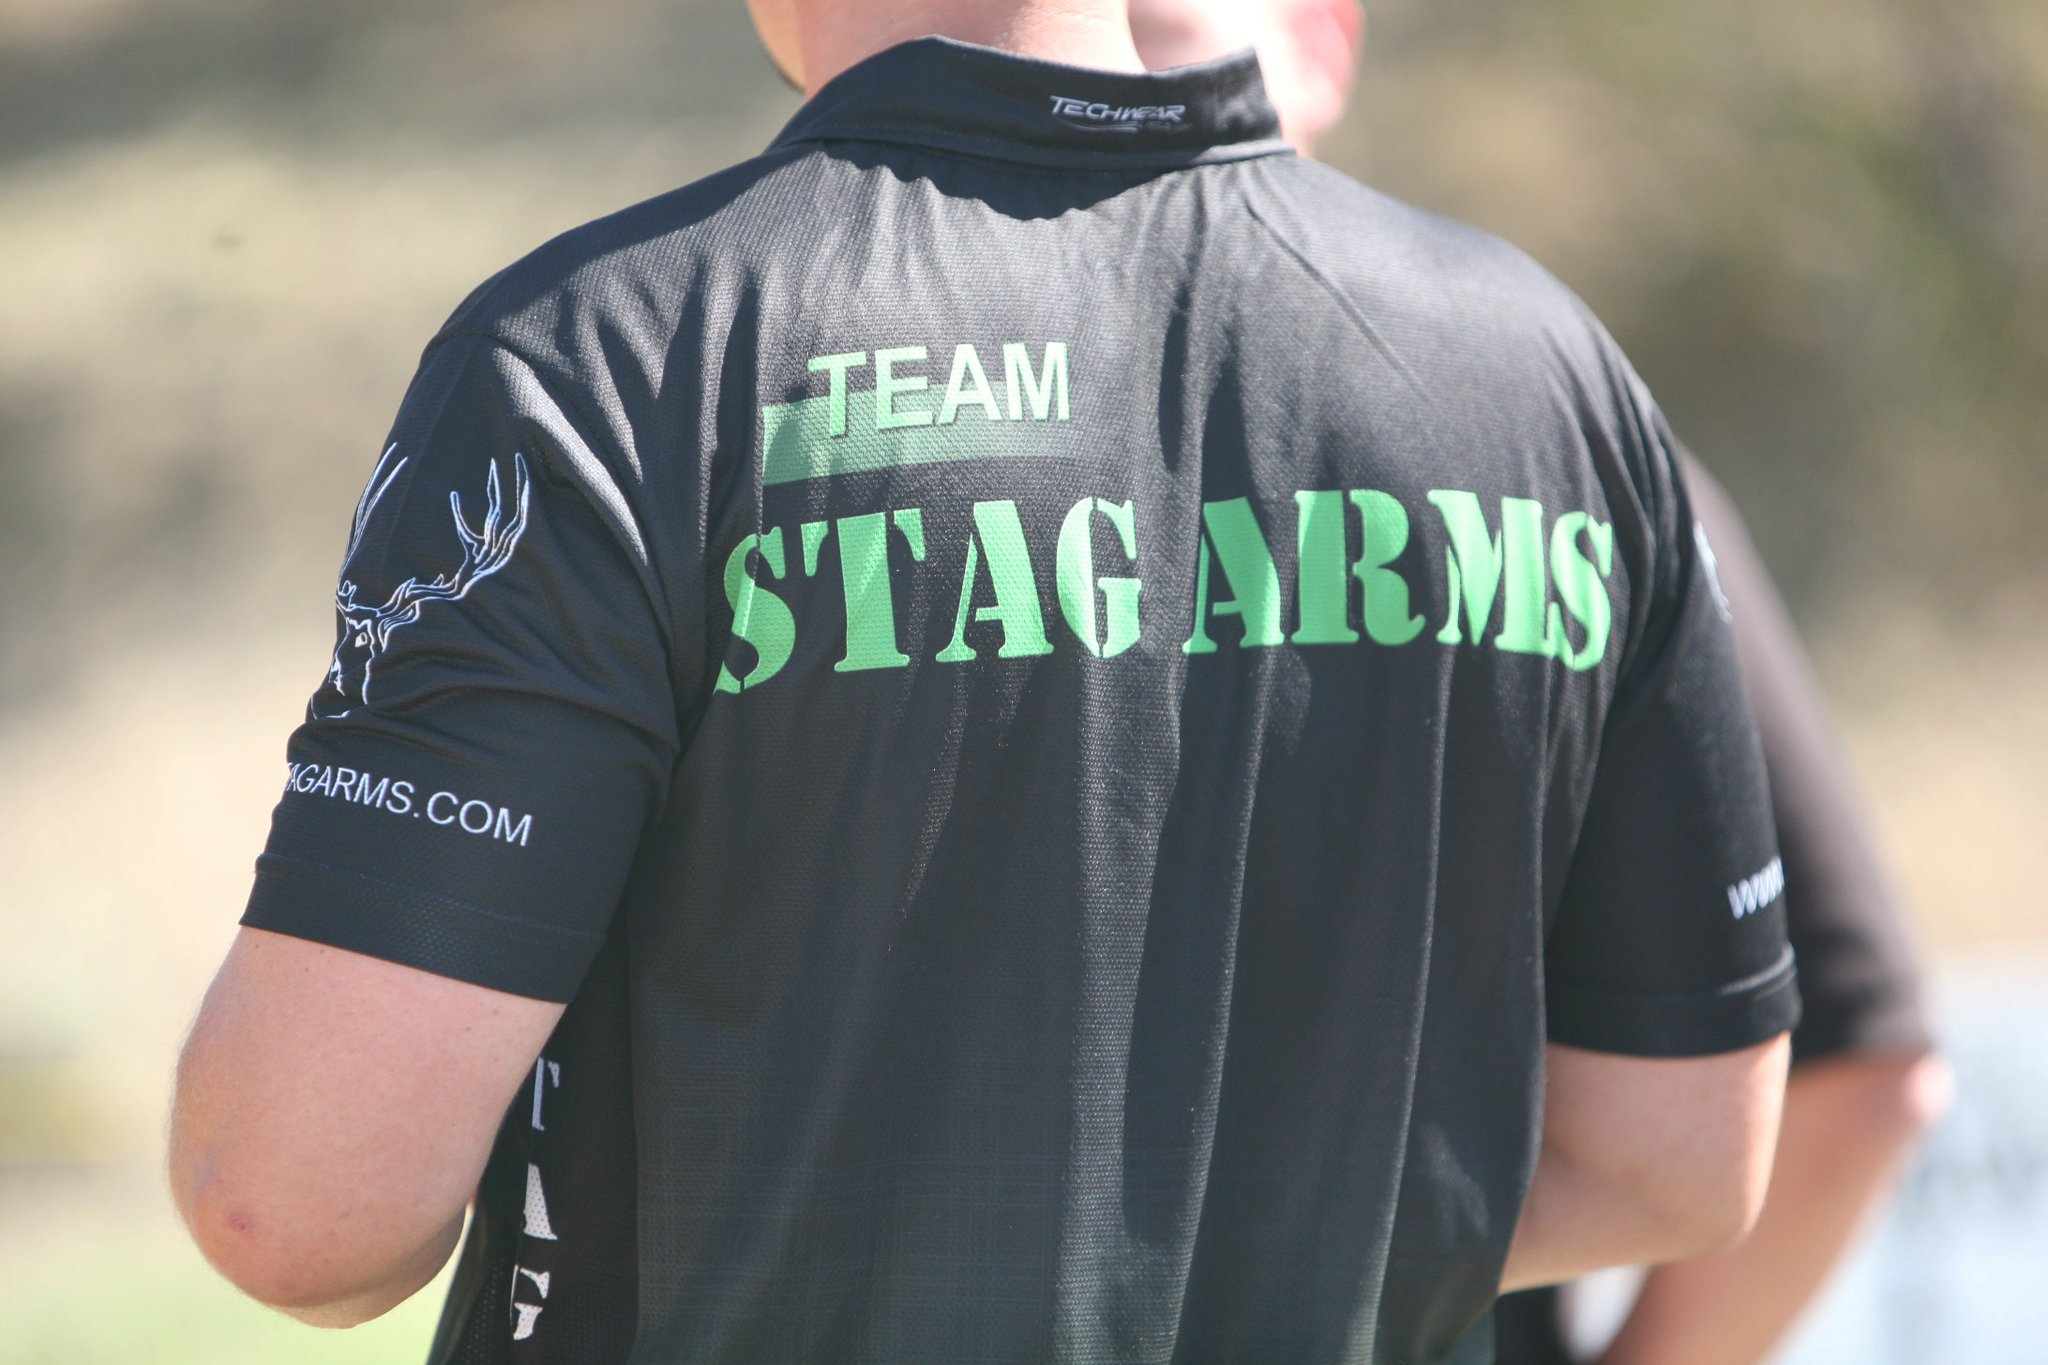 Team Stag Arms